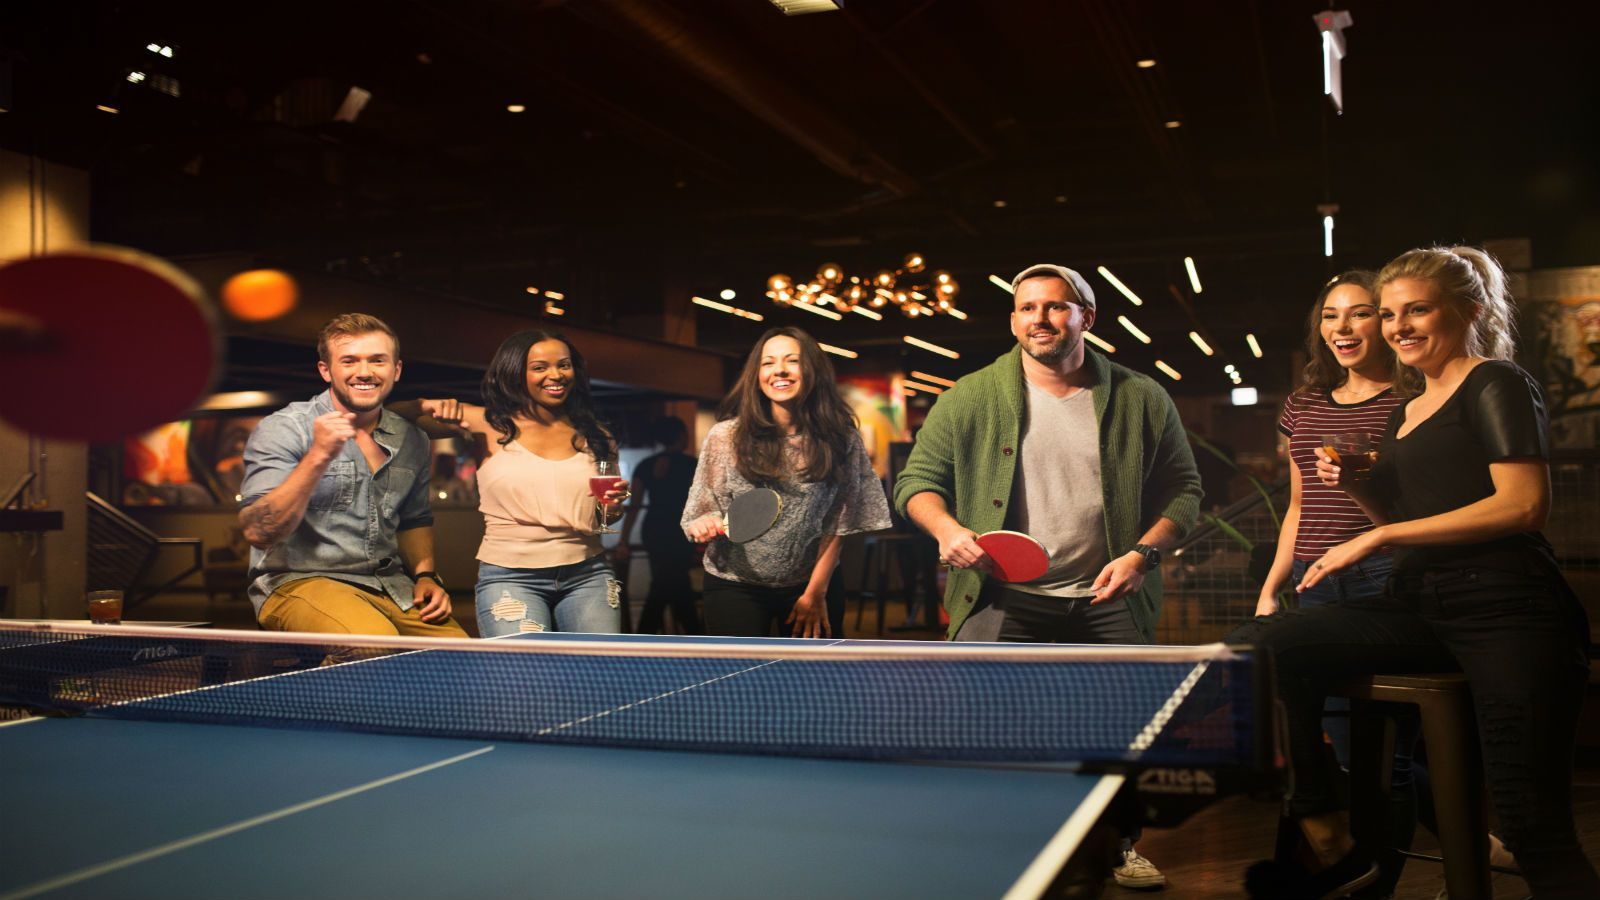 Things to do in  River North Chicago - Ping Pong